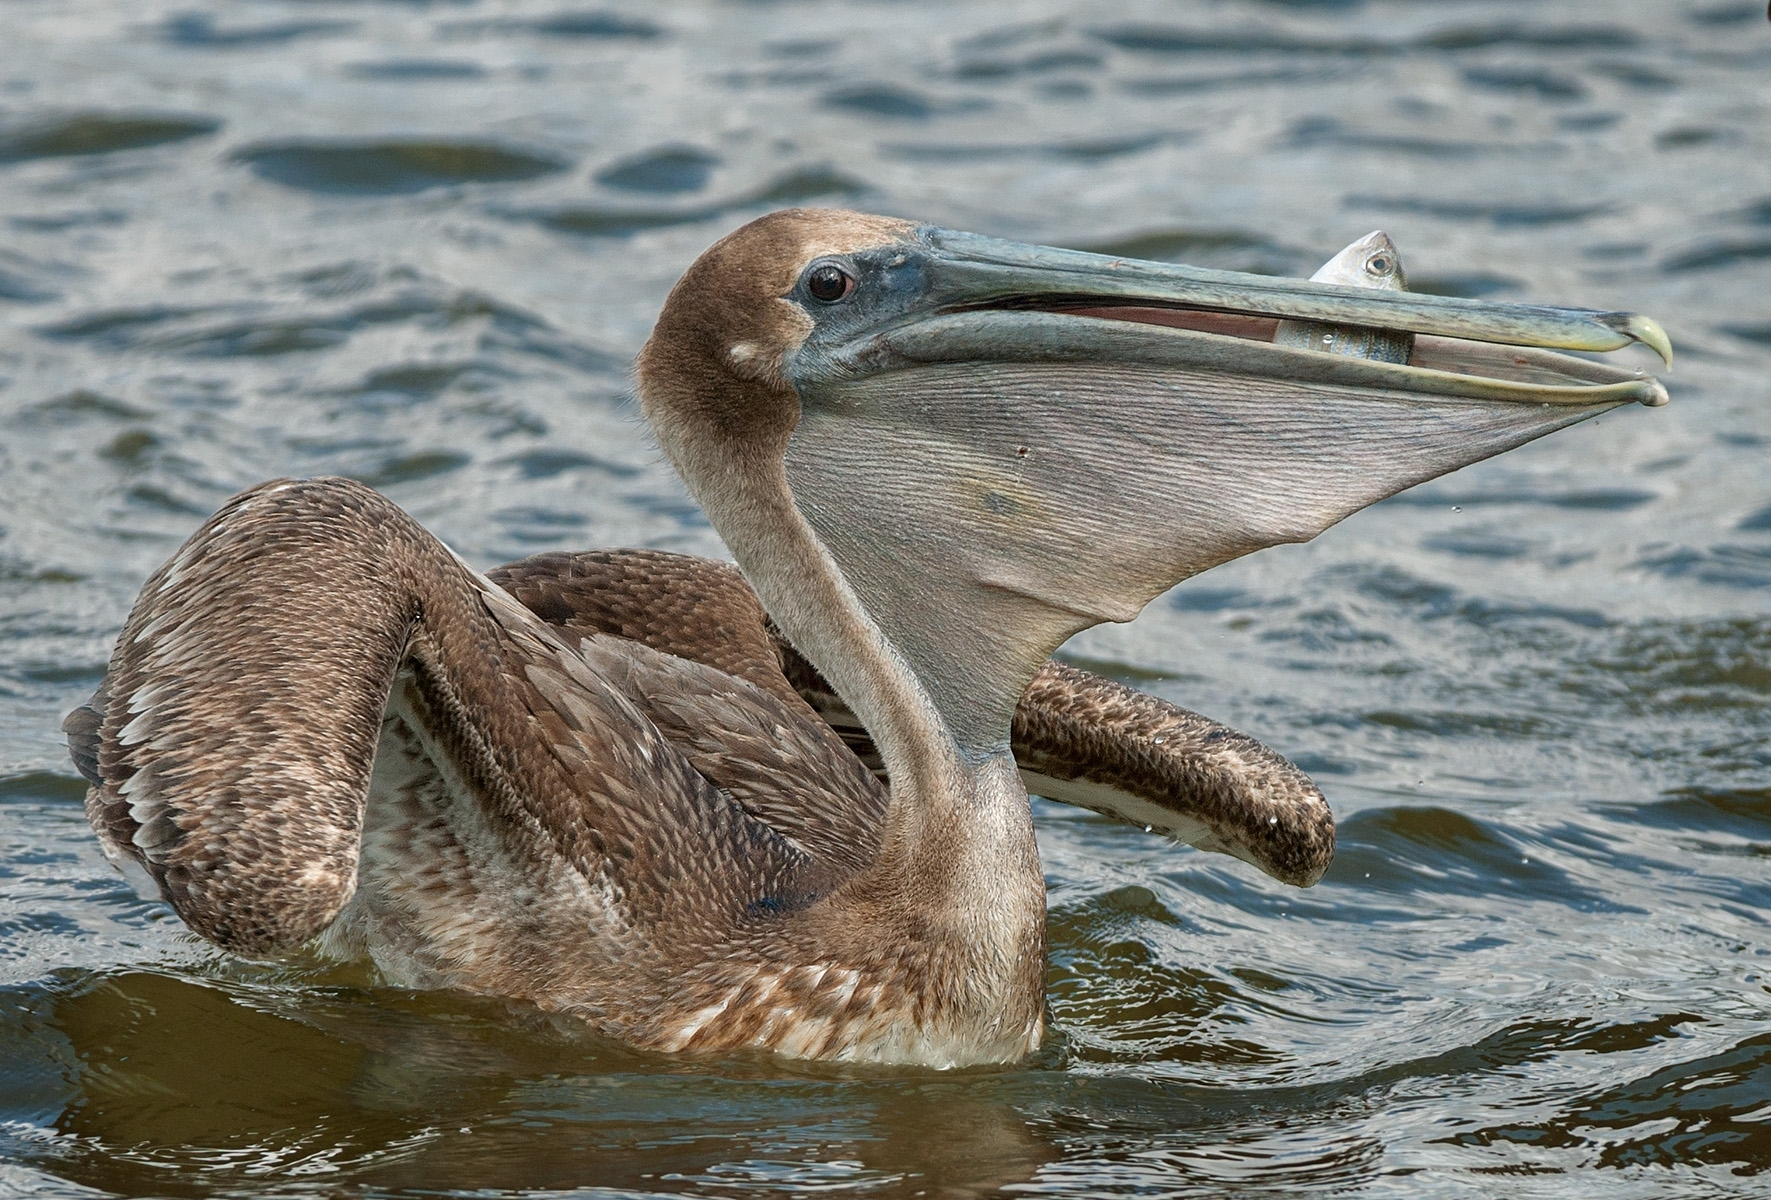 Juvenile-Brown-Pelican-Pelecanus-occidentalis-with-Catch-NA-1-Place-by-Roger-Kumpf-SC